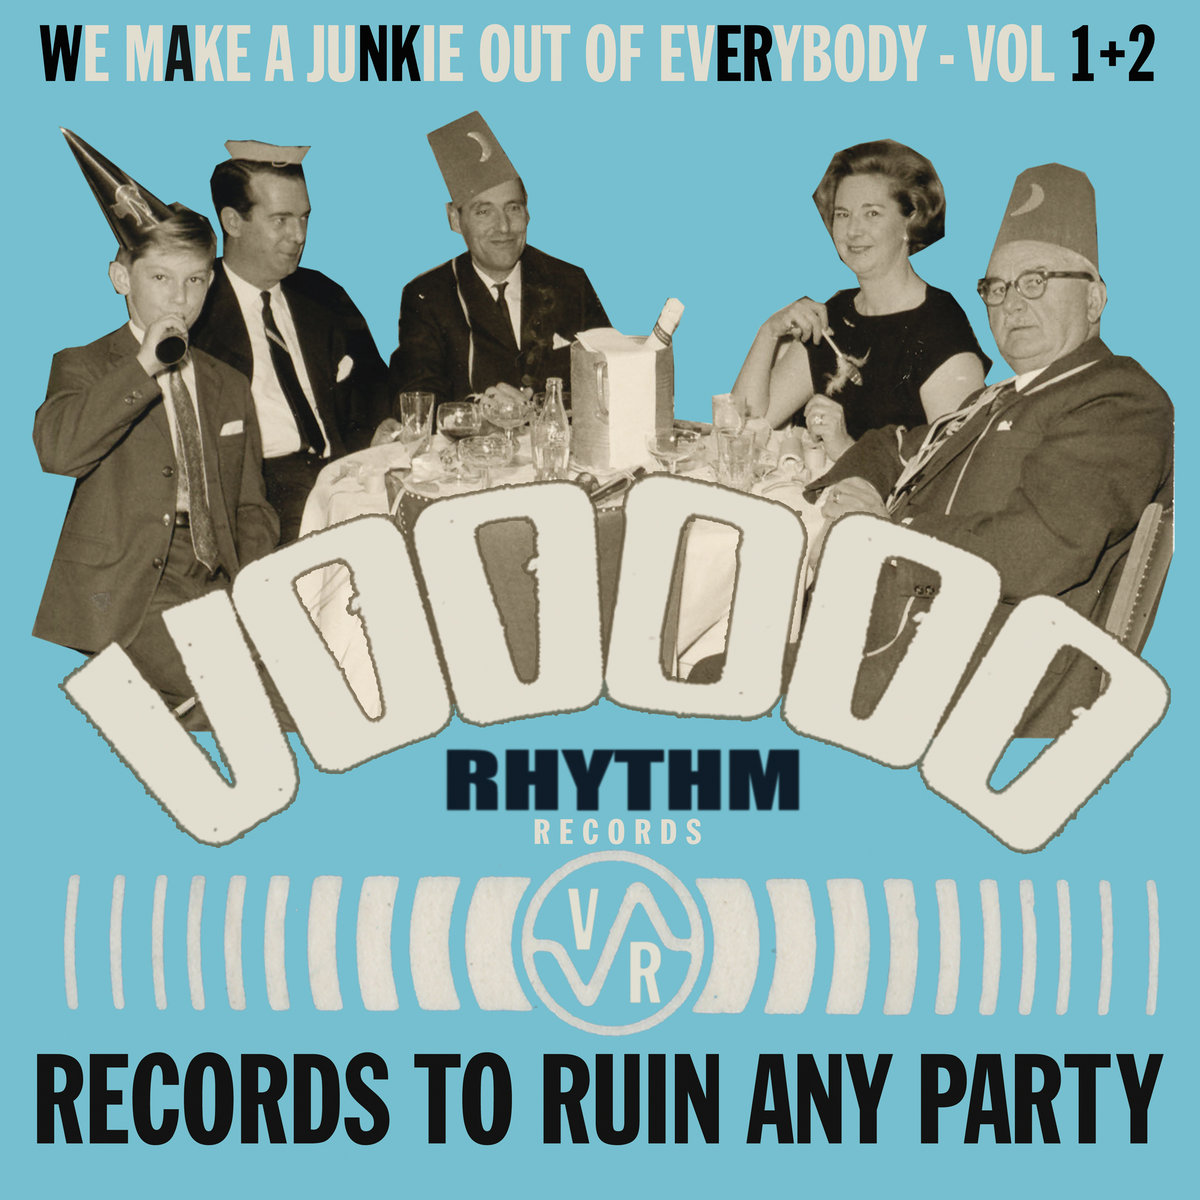 the monsters intro voodoo rhythm compilation